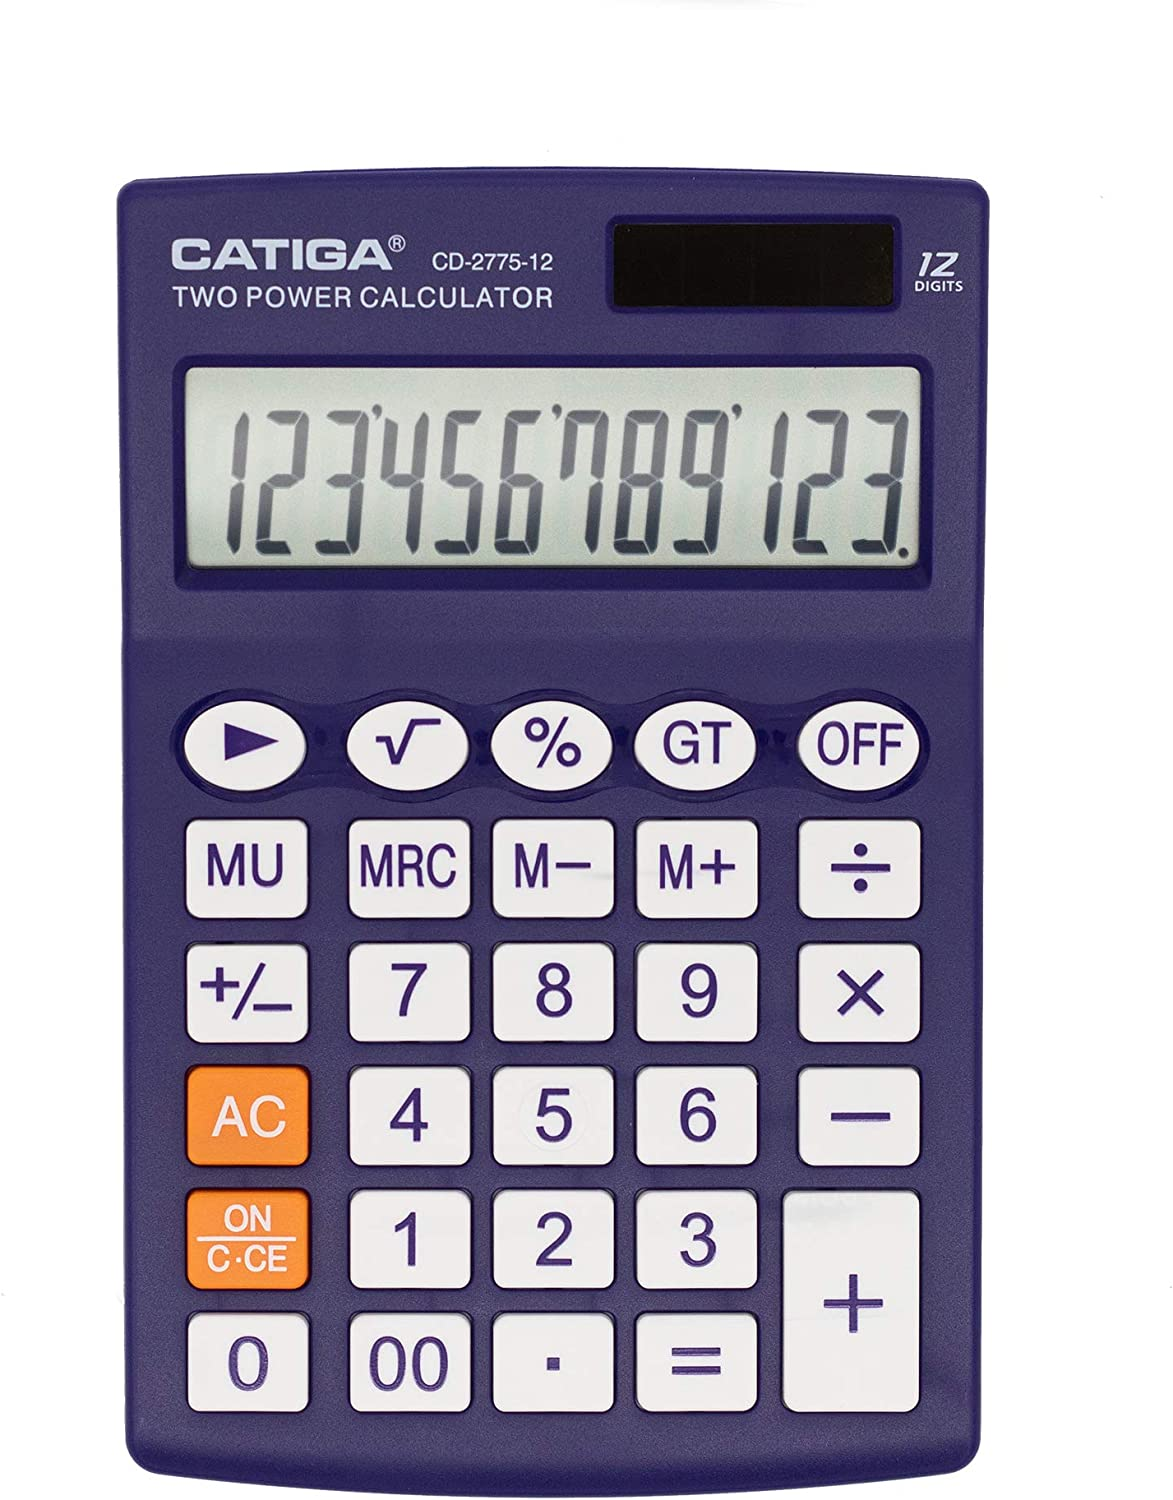 Desktop Calculator with 12 Digit LCD Display Screen, Home or Office Use, Easy to use with Clear Display/Memory Functions, CD-2775 (Purple)